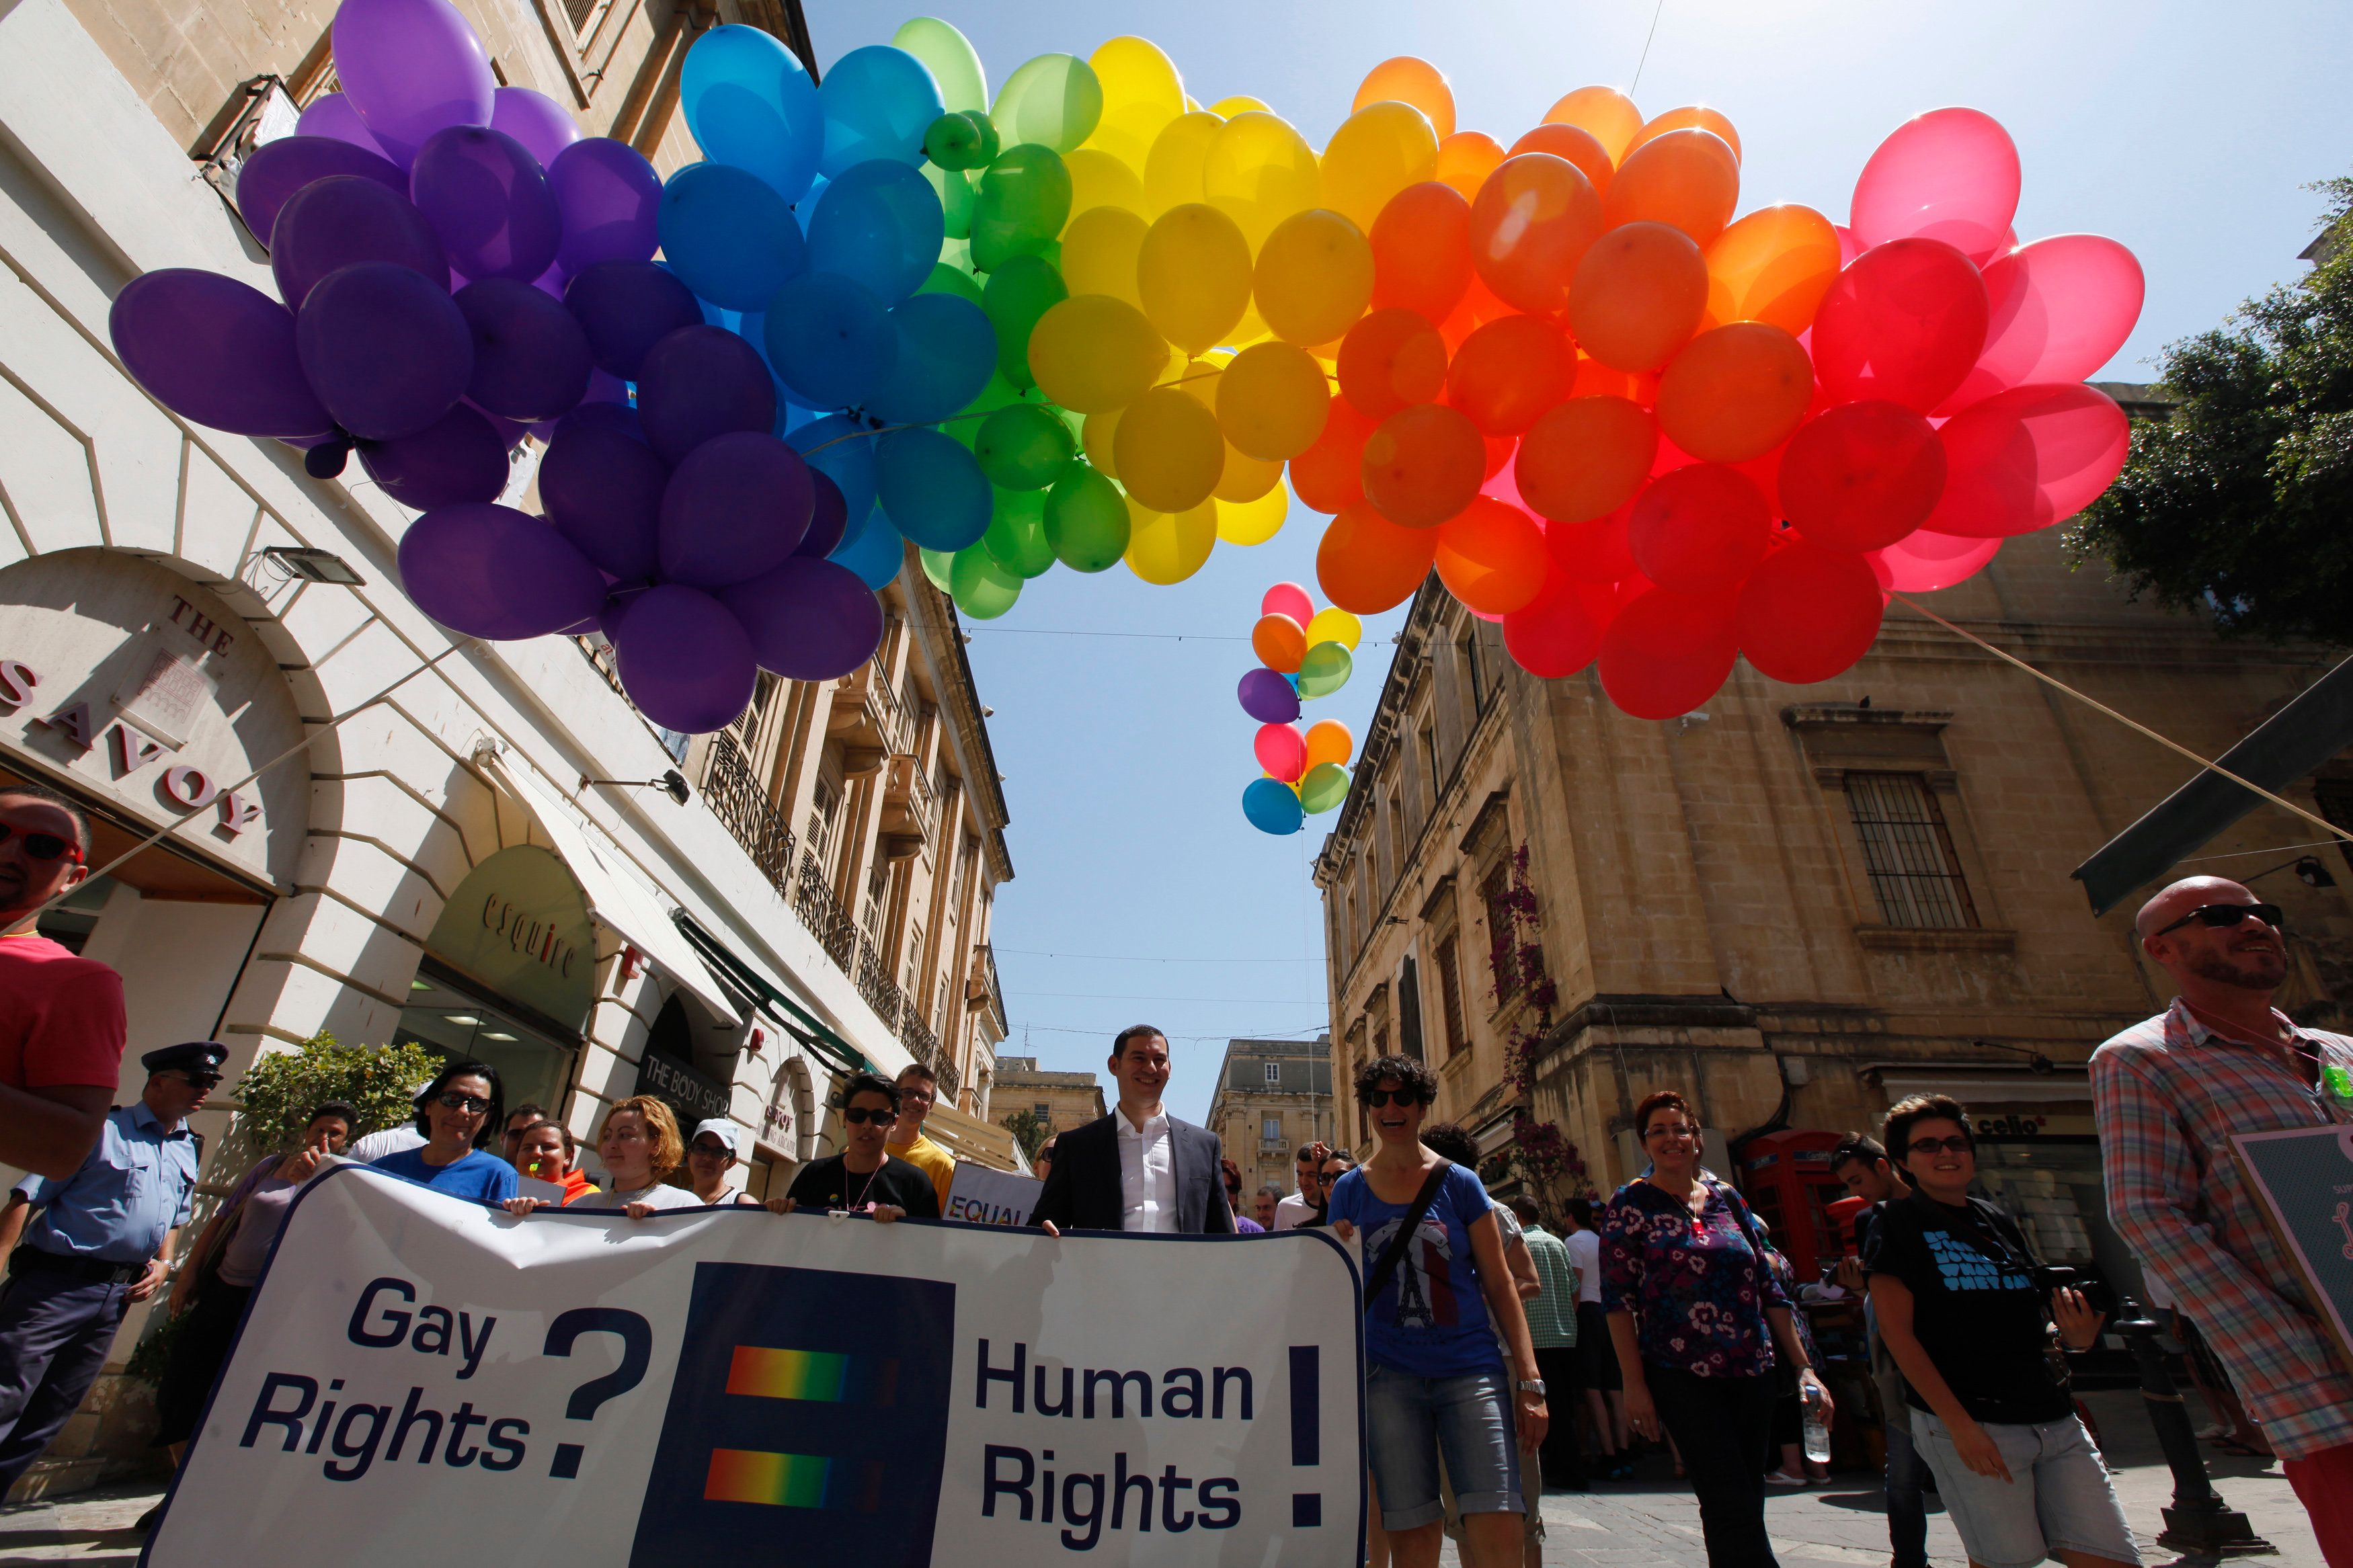 A gay pride parade in Valletta, the capital of Malta, in 2013.